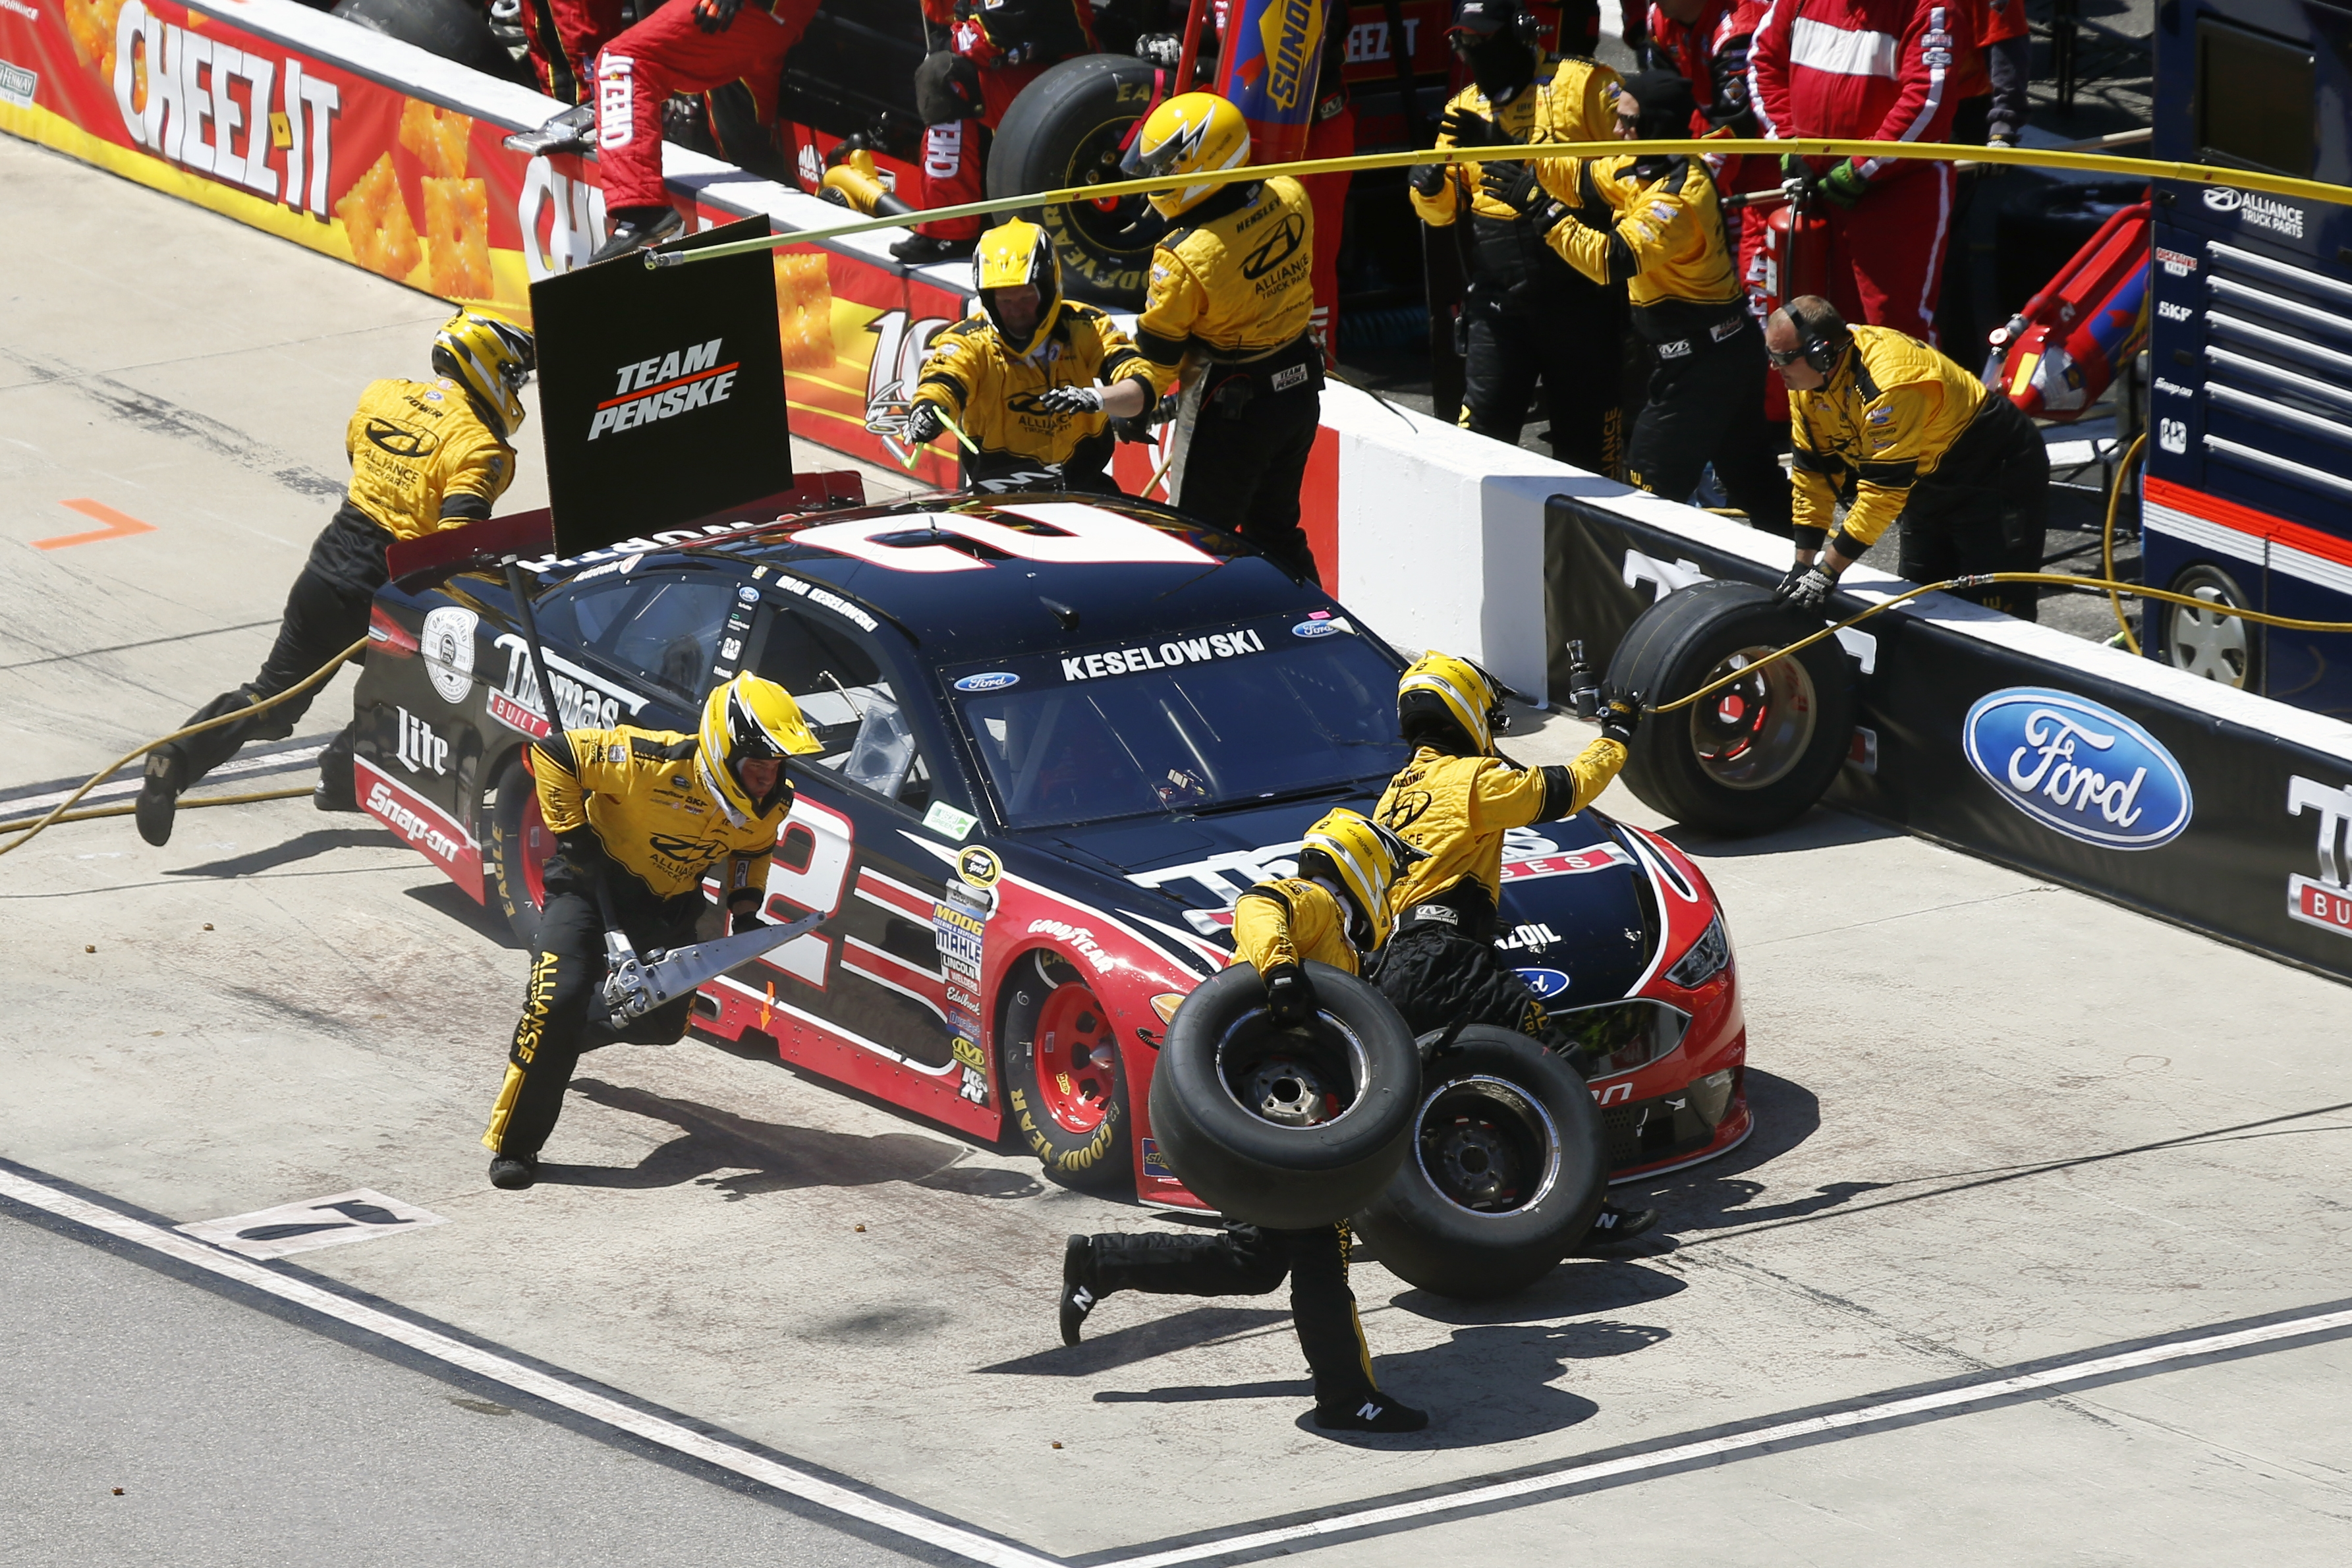 Brad Keselowski comes in for a pit stop during the Sprint Cup auto race at Richmond International Raceway in Richmond, Va., Sunday, April 24, 2016. (AP Photo/Chet Strange)